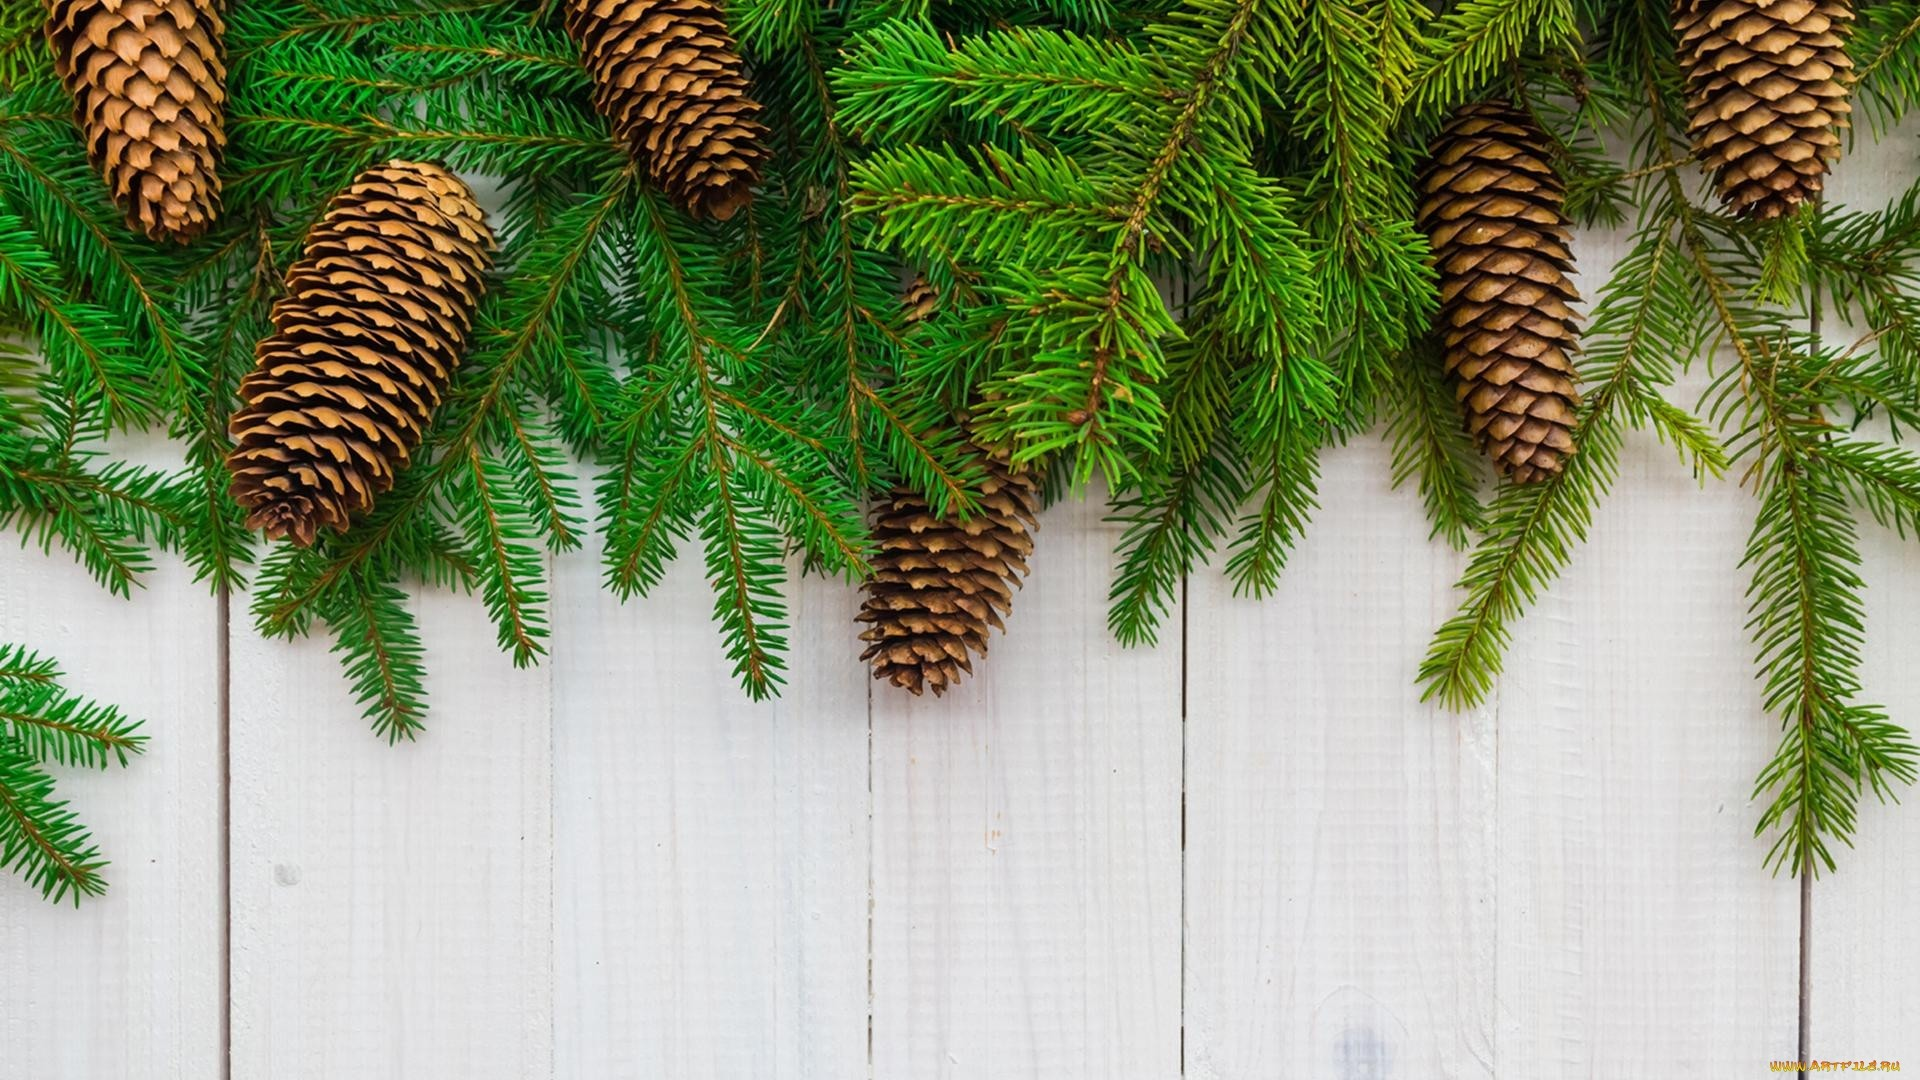 New Year Branches Wallpaper theme